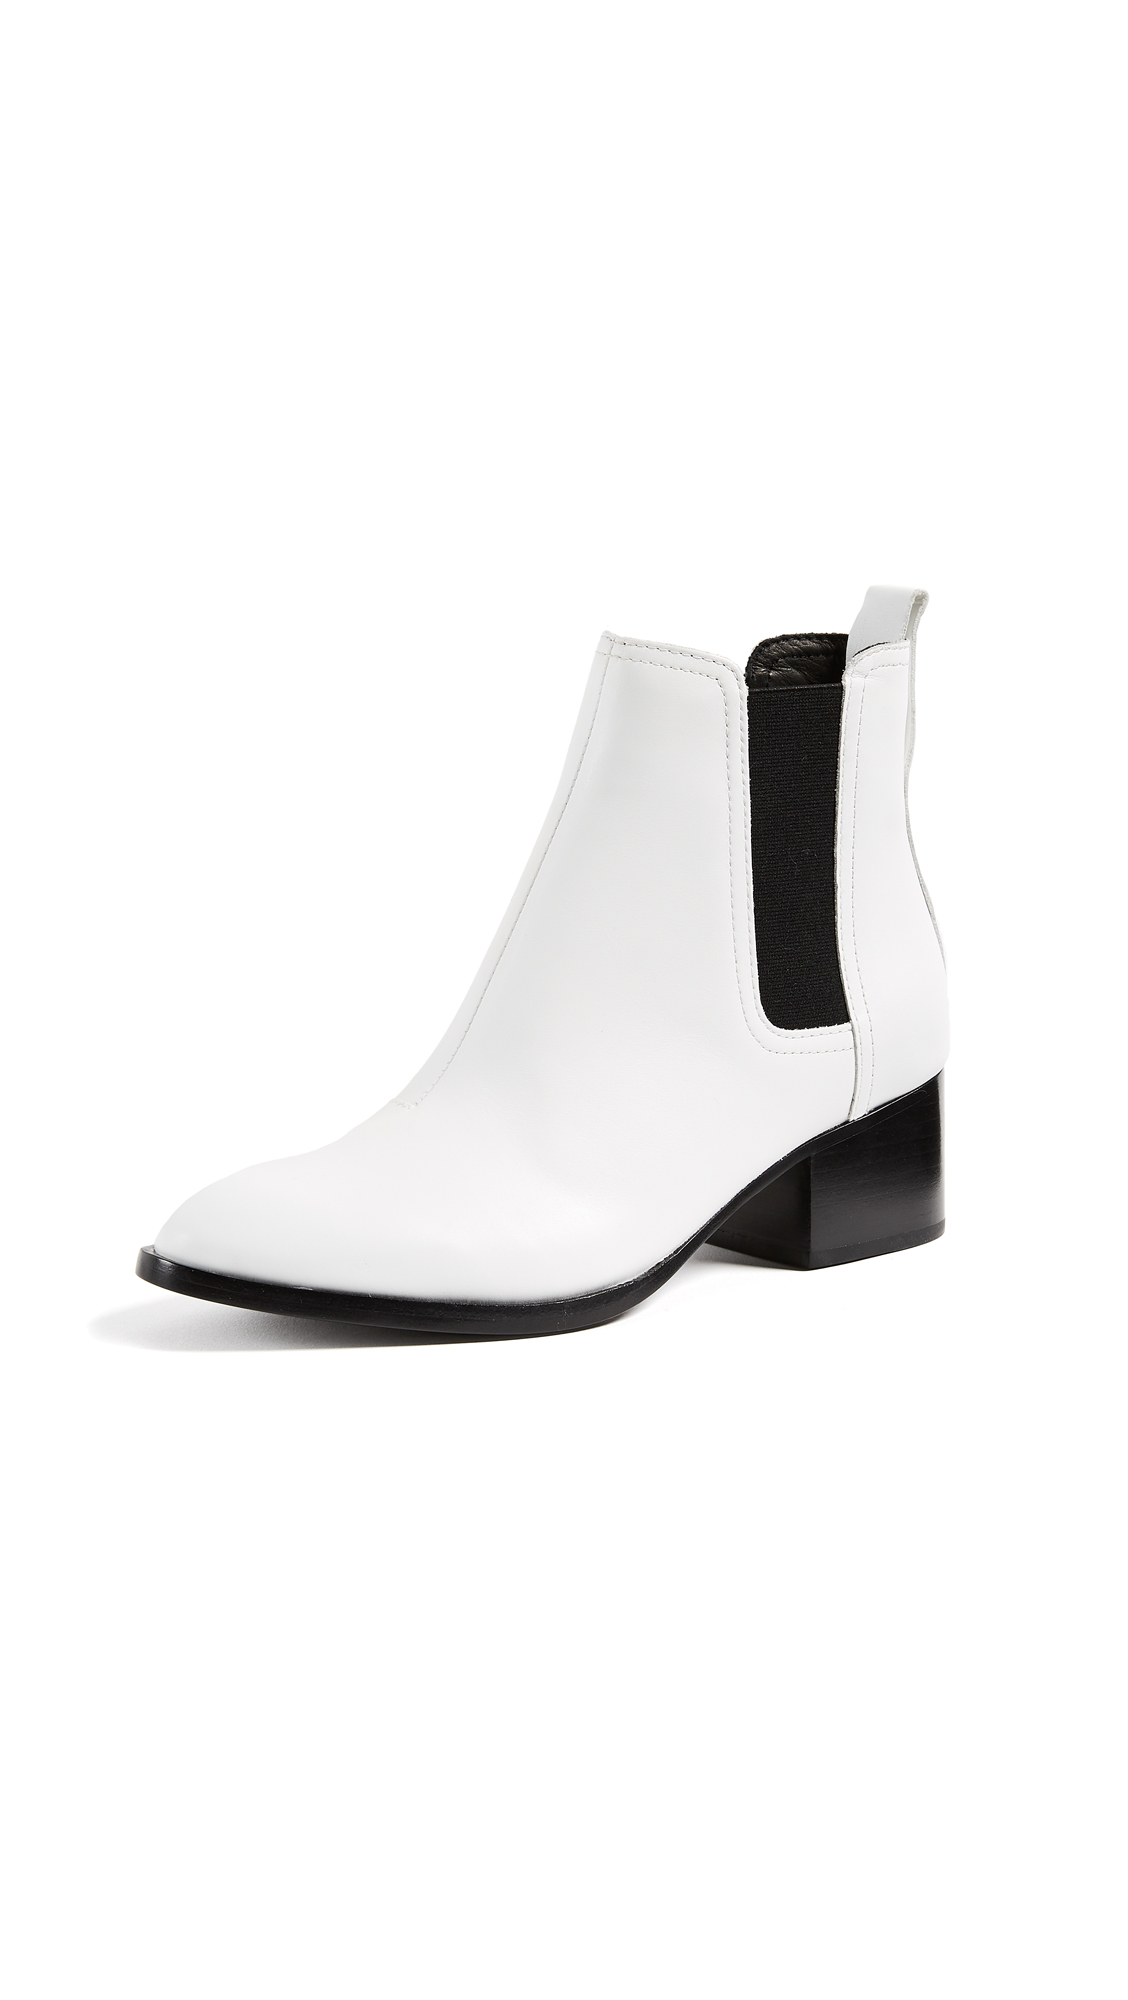 Rag & Bone Walker Booties - White